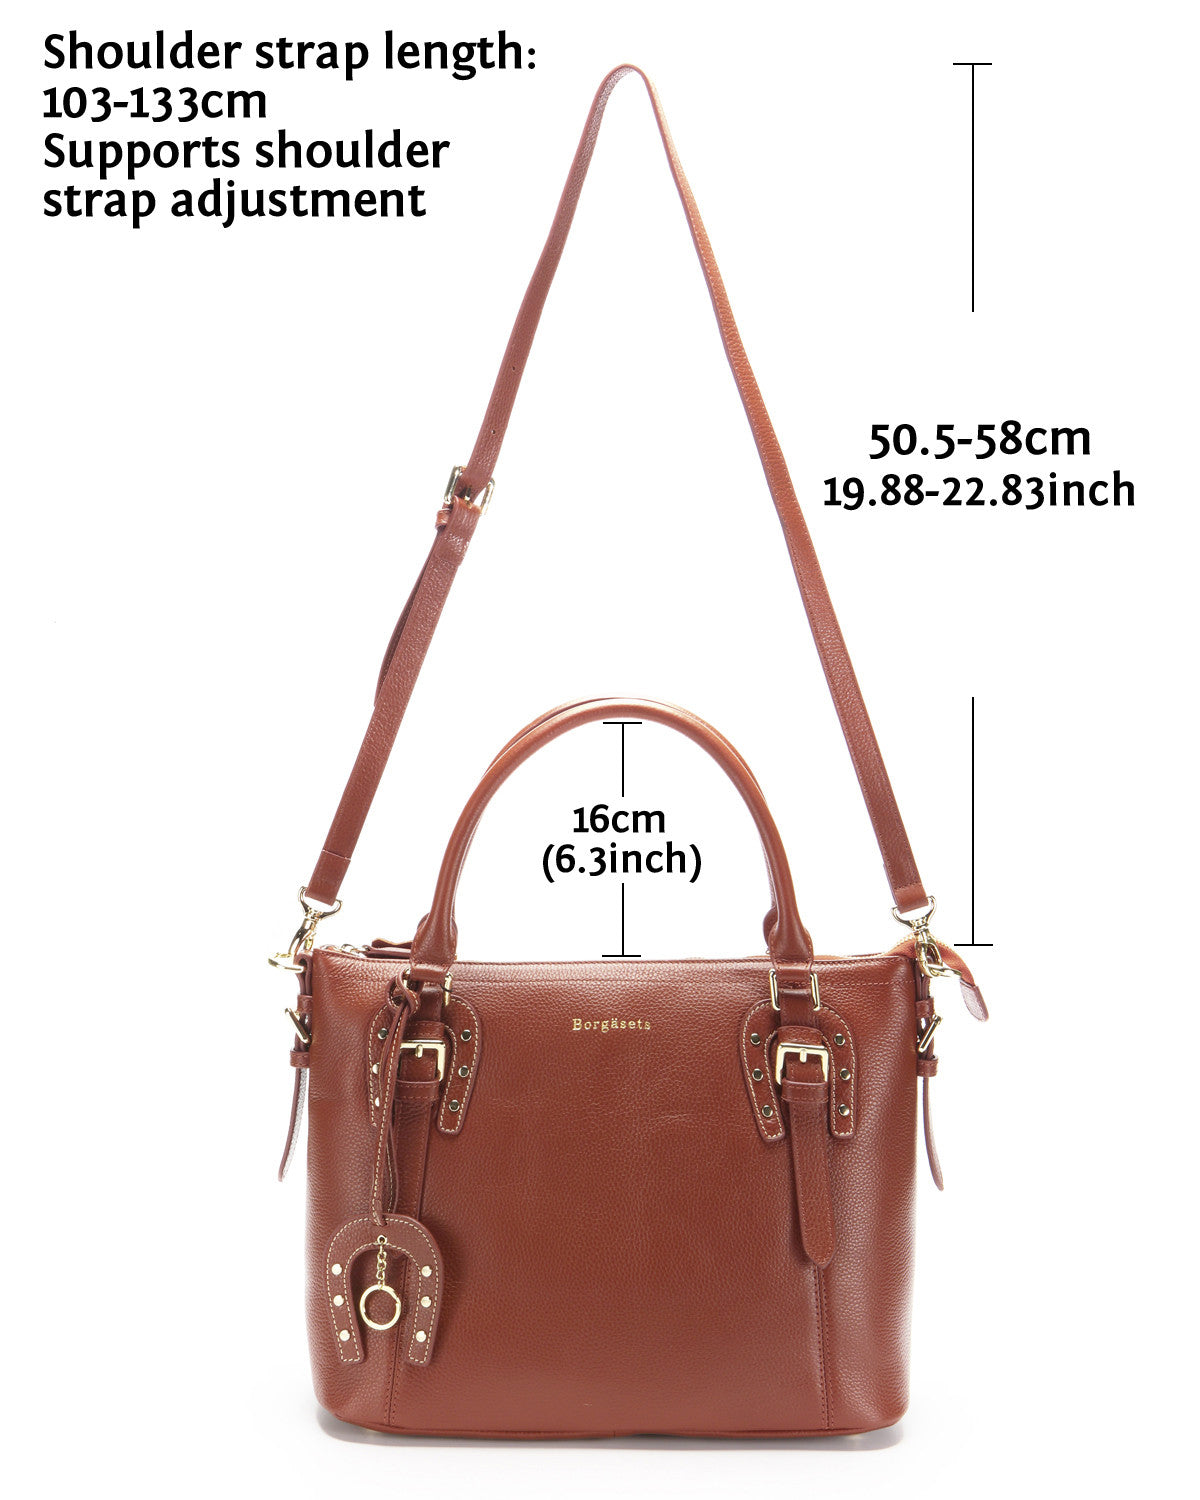 Horseshoe Womens Vintage Tote Shoulder Bag Top Handle Crossbody Handbags Large Capacity With Key Chain Brown - Borgasets